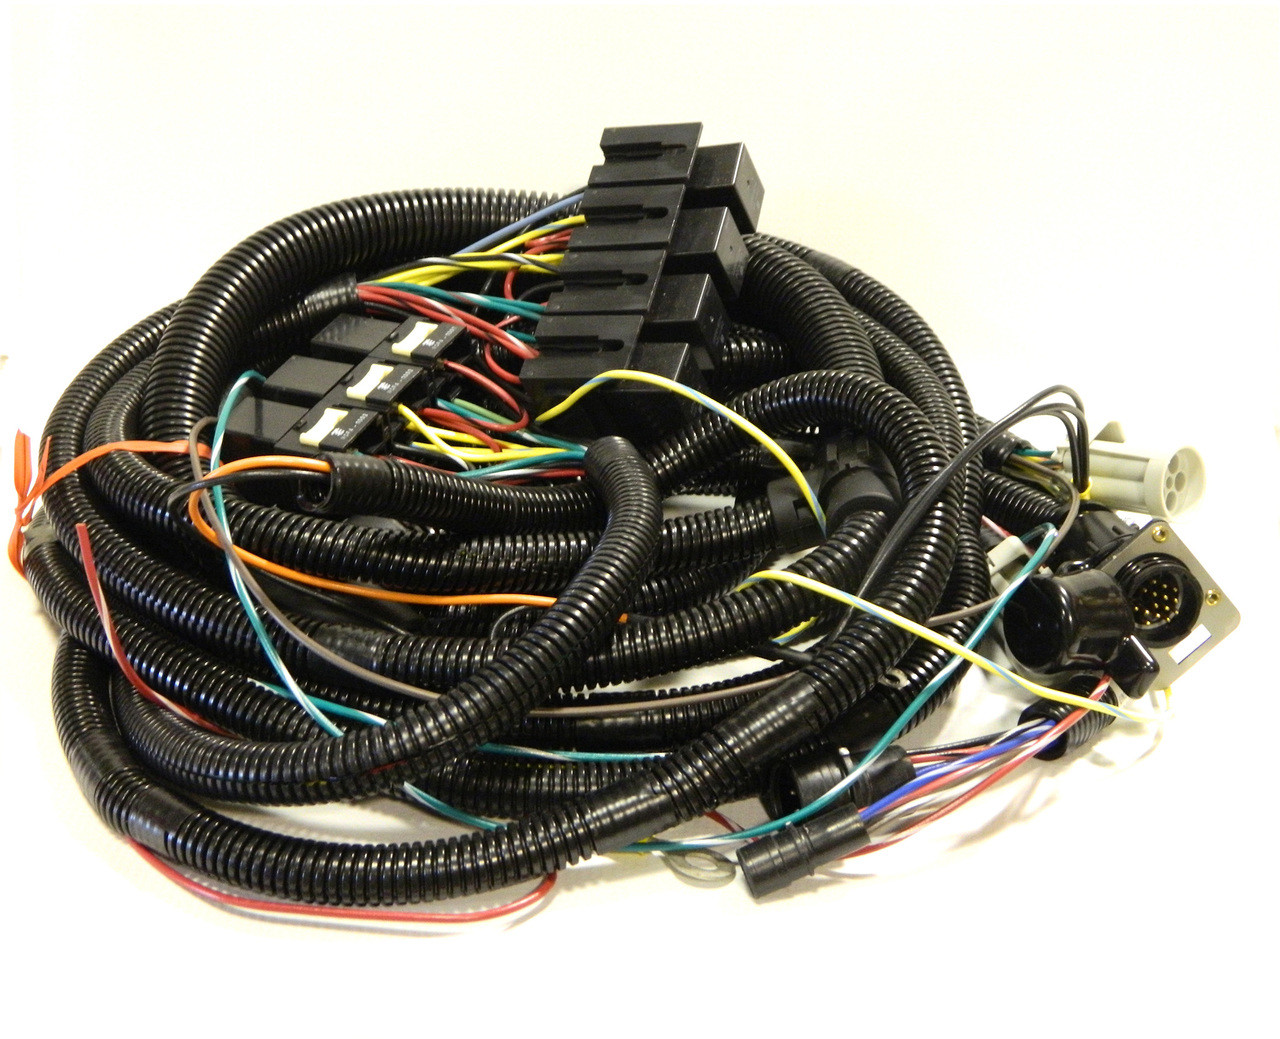 HN38813097 --- Hiniker Underhood Wiring Harness with 16 Pin CPC Connector